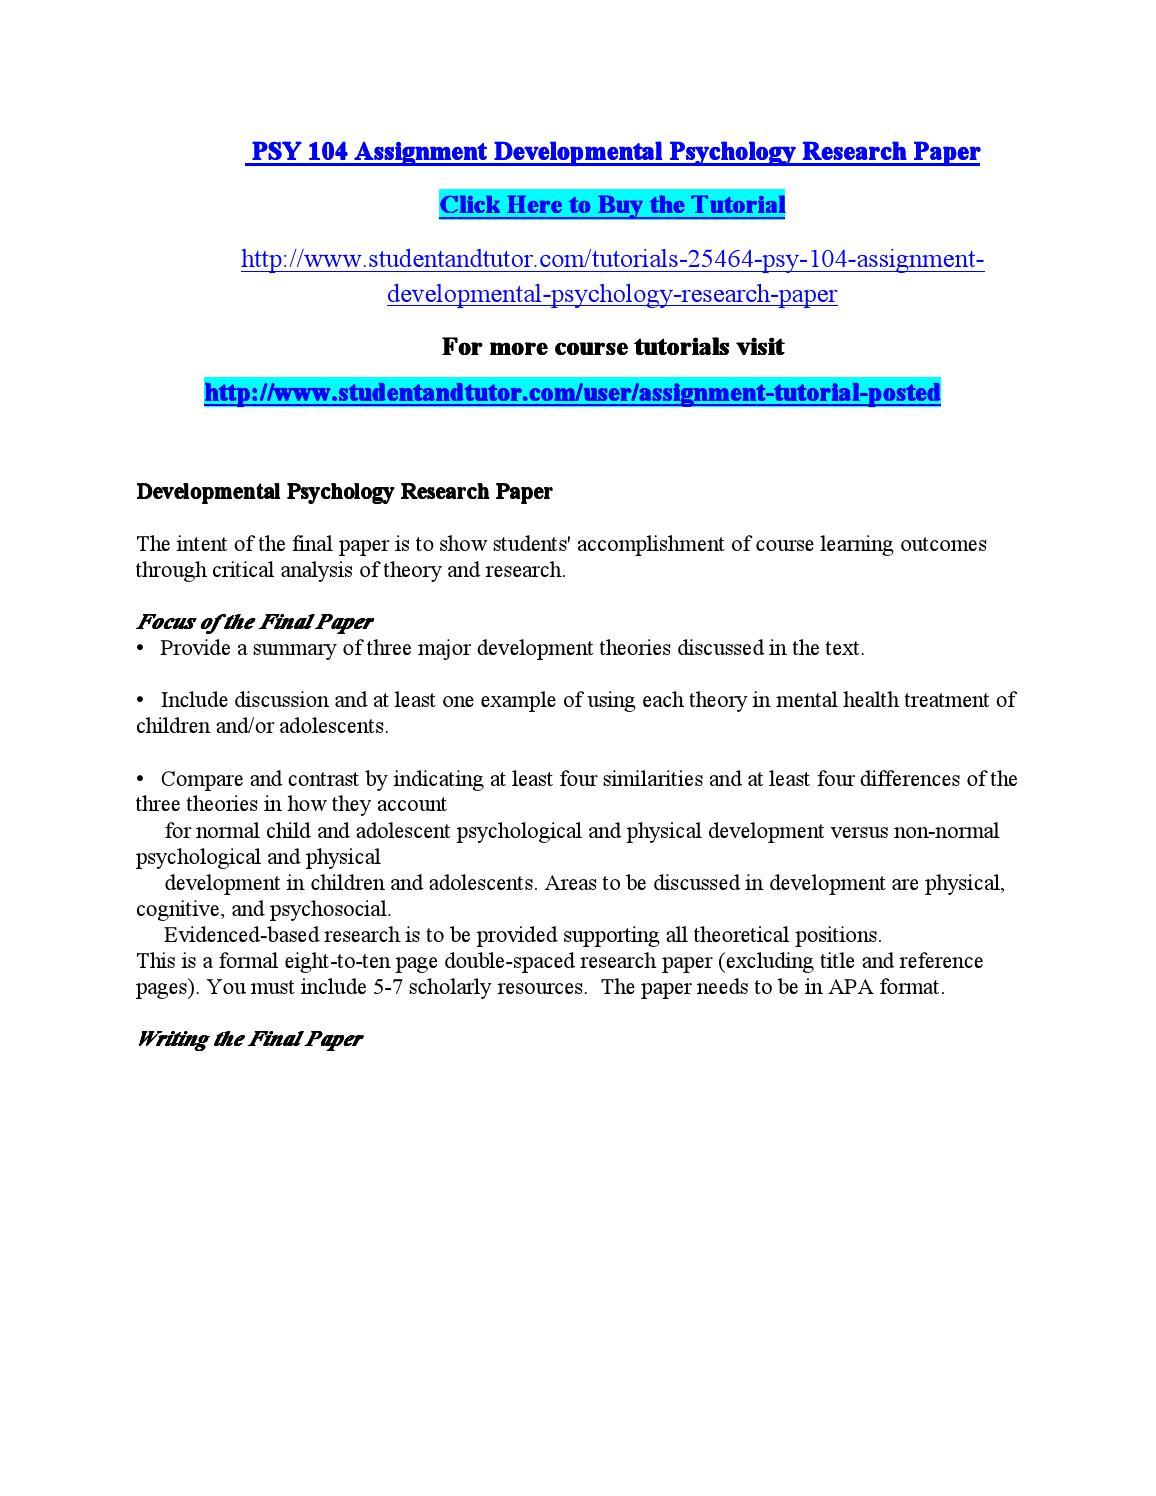 Process Paper Essay Psy  Assignment Developmental Psychology Research Paper By Rh Issuu Com  Child Development Psychology Research Paper Topics Introduction To  Developmental  Science And Technology Essay Topics also Thesis Statement For Descriptive Essay Developmental Psychology Research Paper Business Law Essays